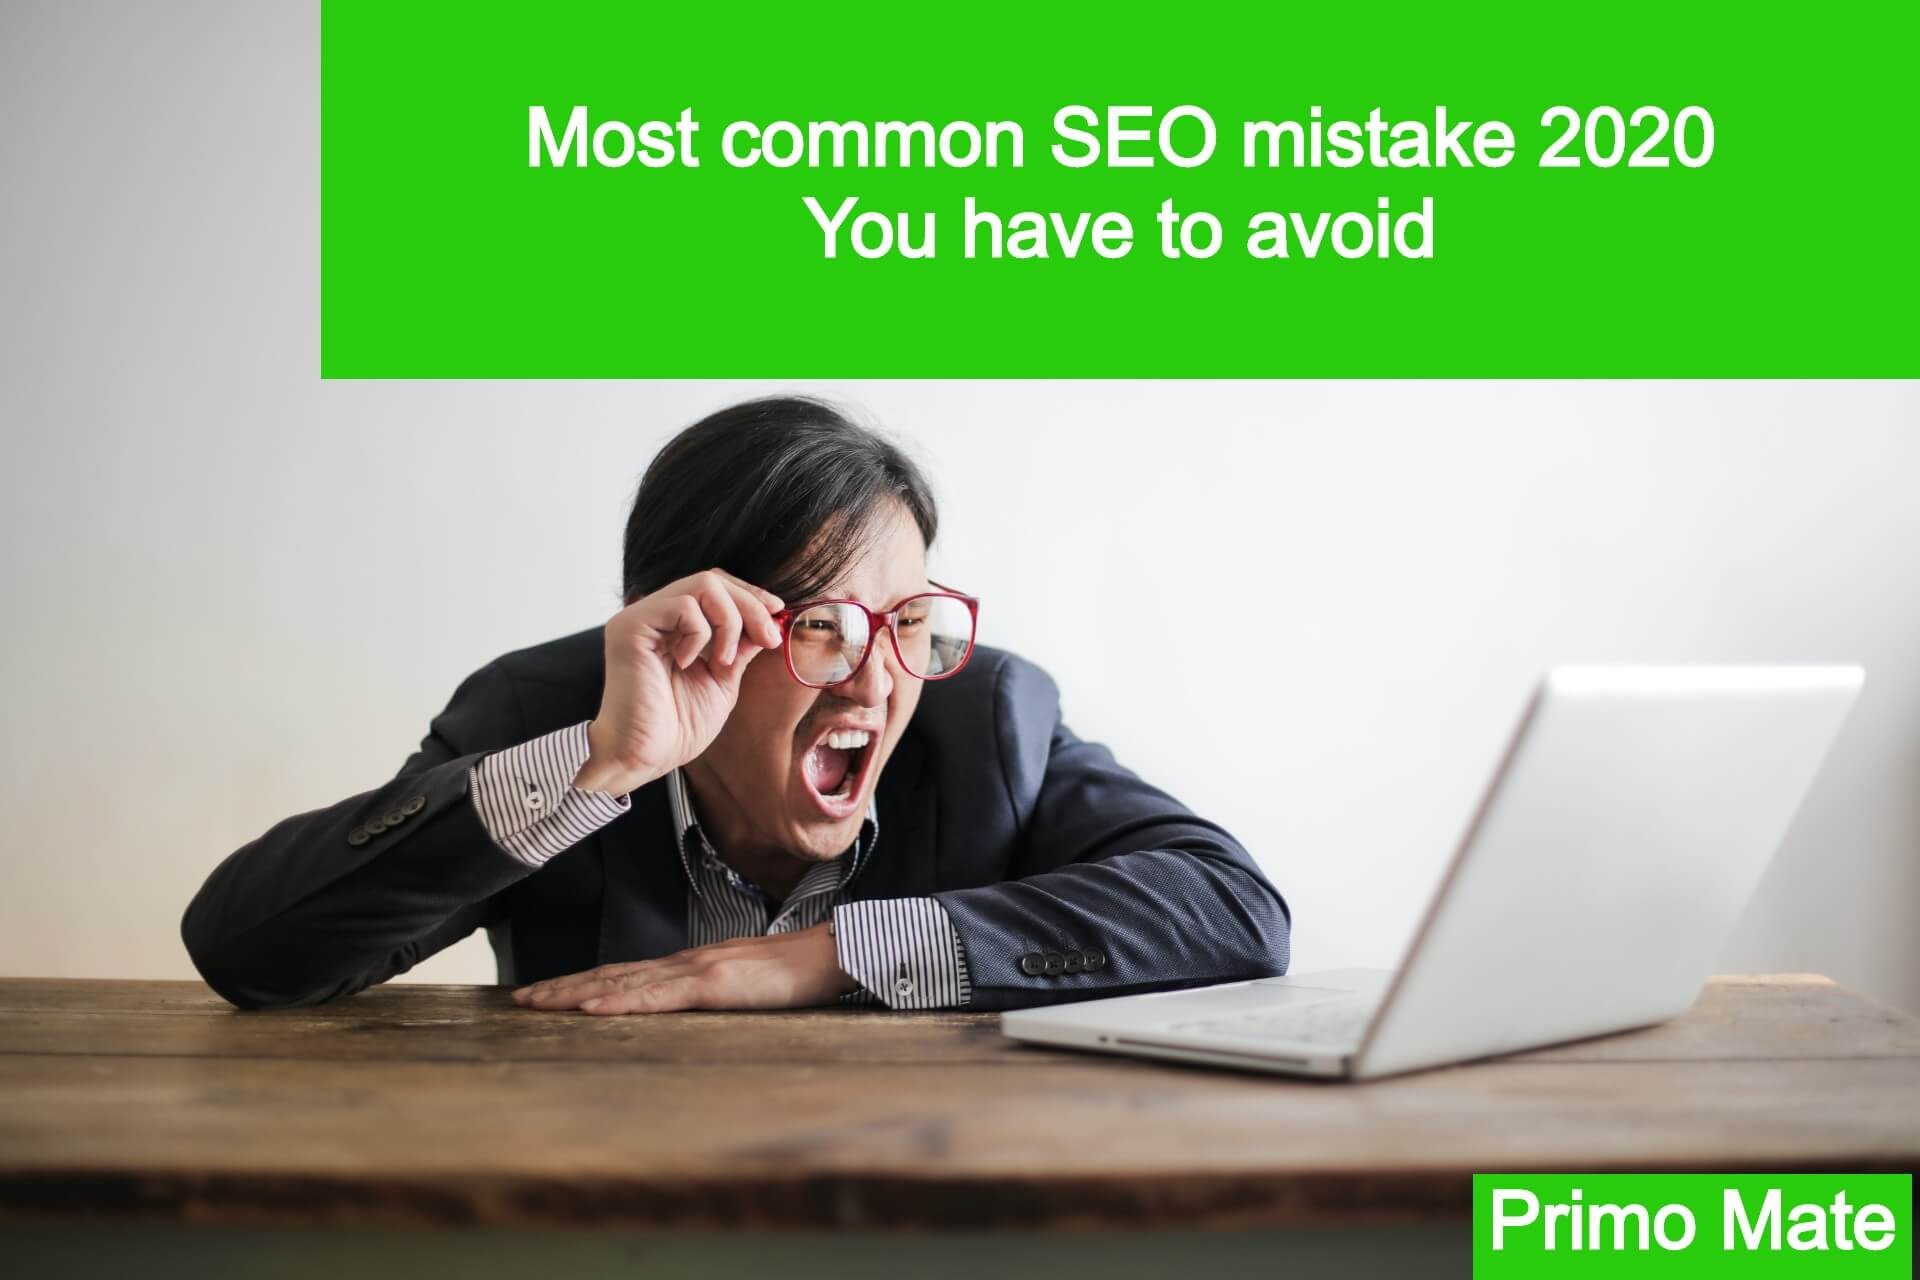 Most common seo mistake to avoid 2020